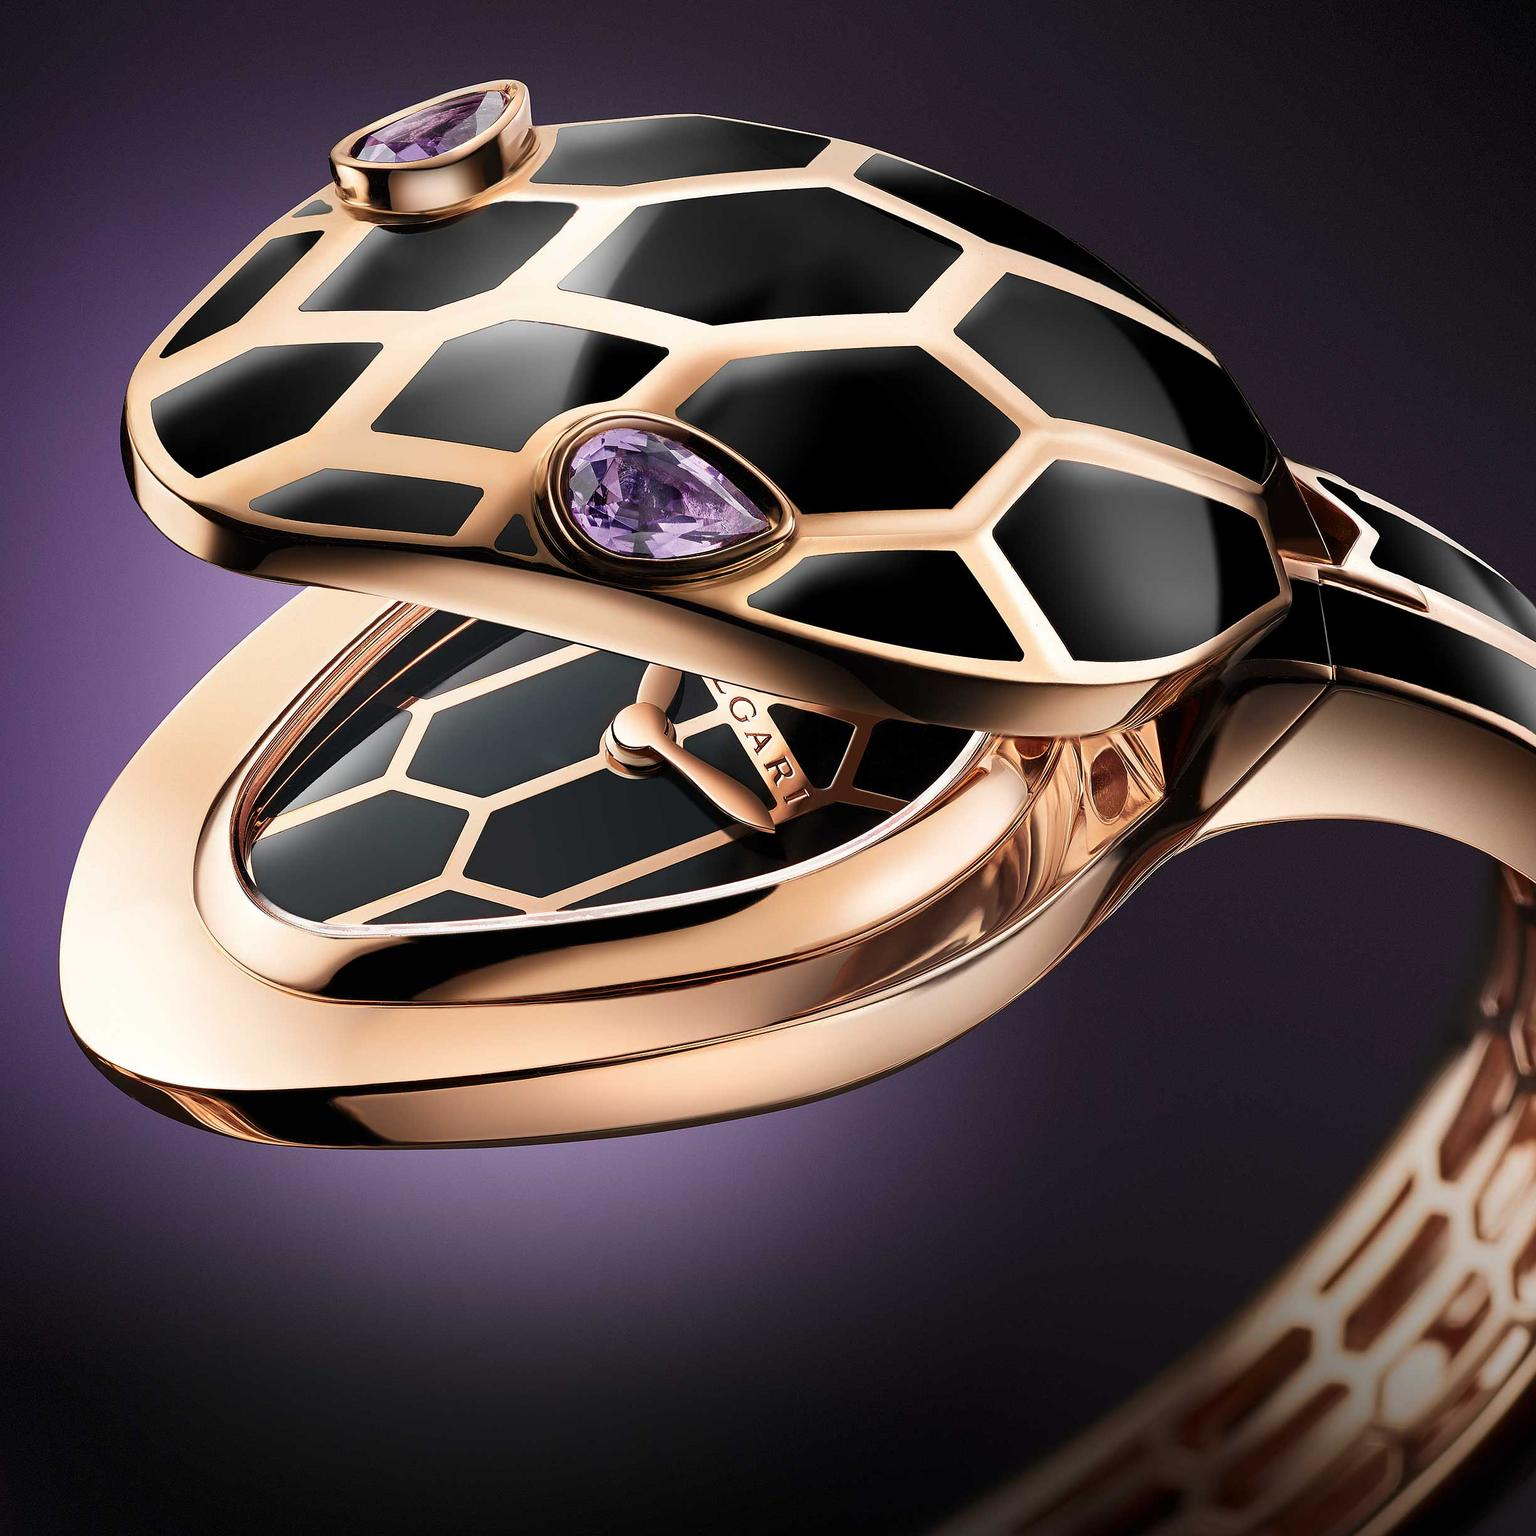 Bulgari Serpenti Seduttori gold amethyst watch